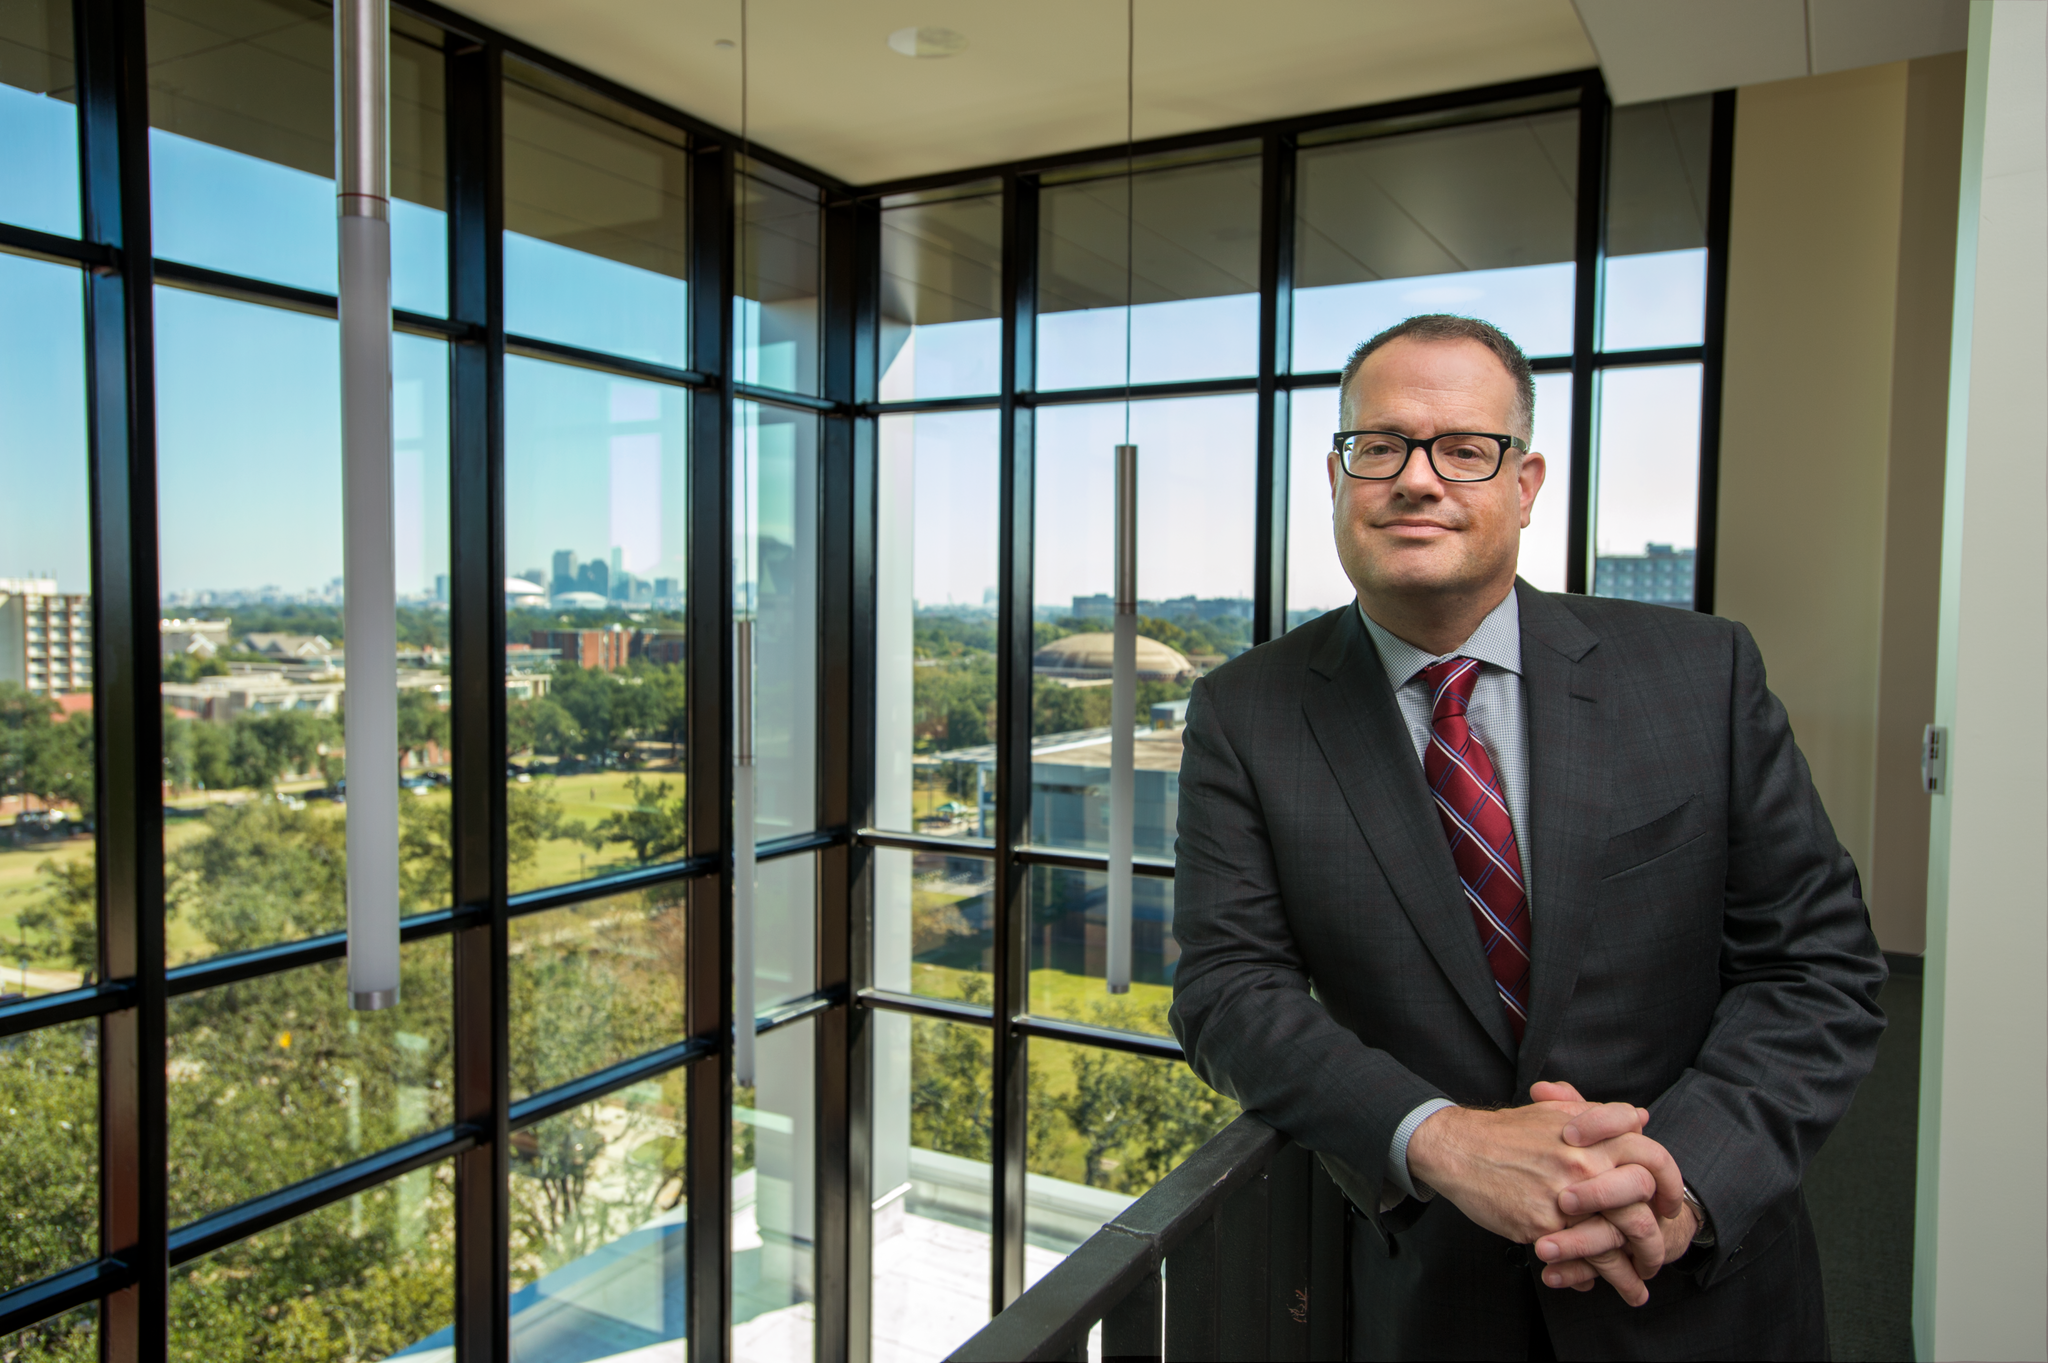 Portrait of Dean Banush standing on the balcony overlooking the 5th floor atrium and view of New Orleans. He is wearing glasses